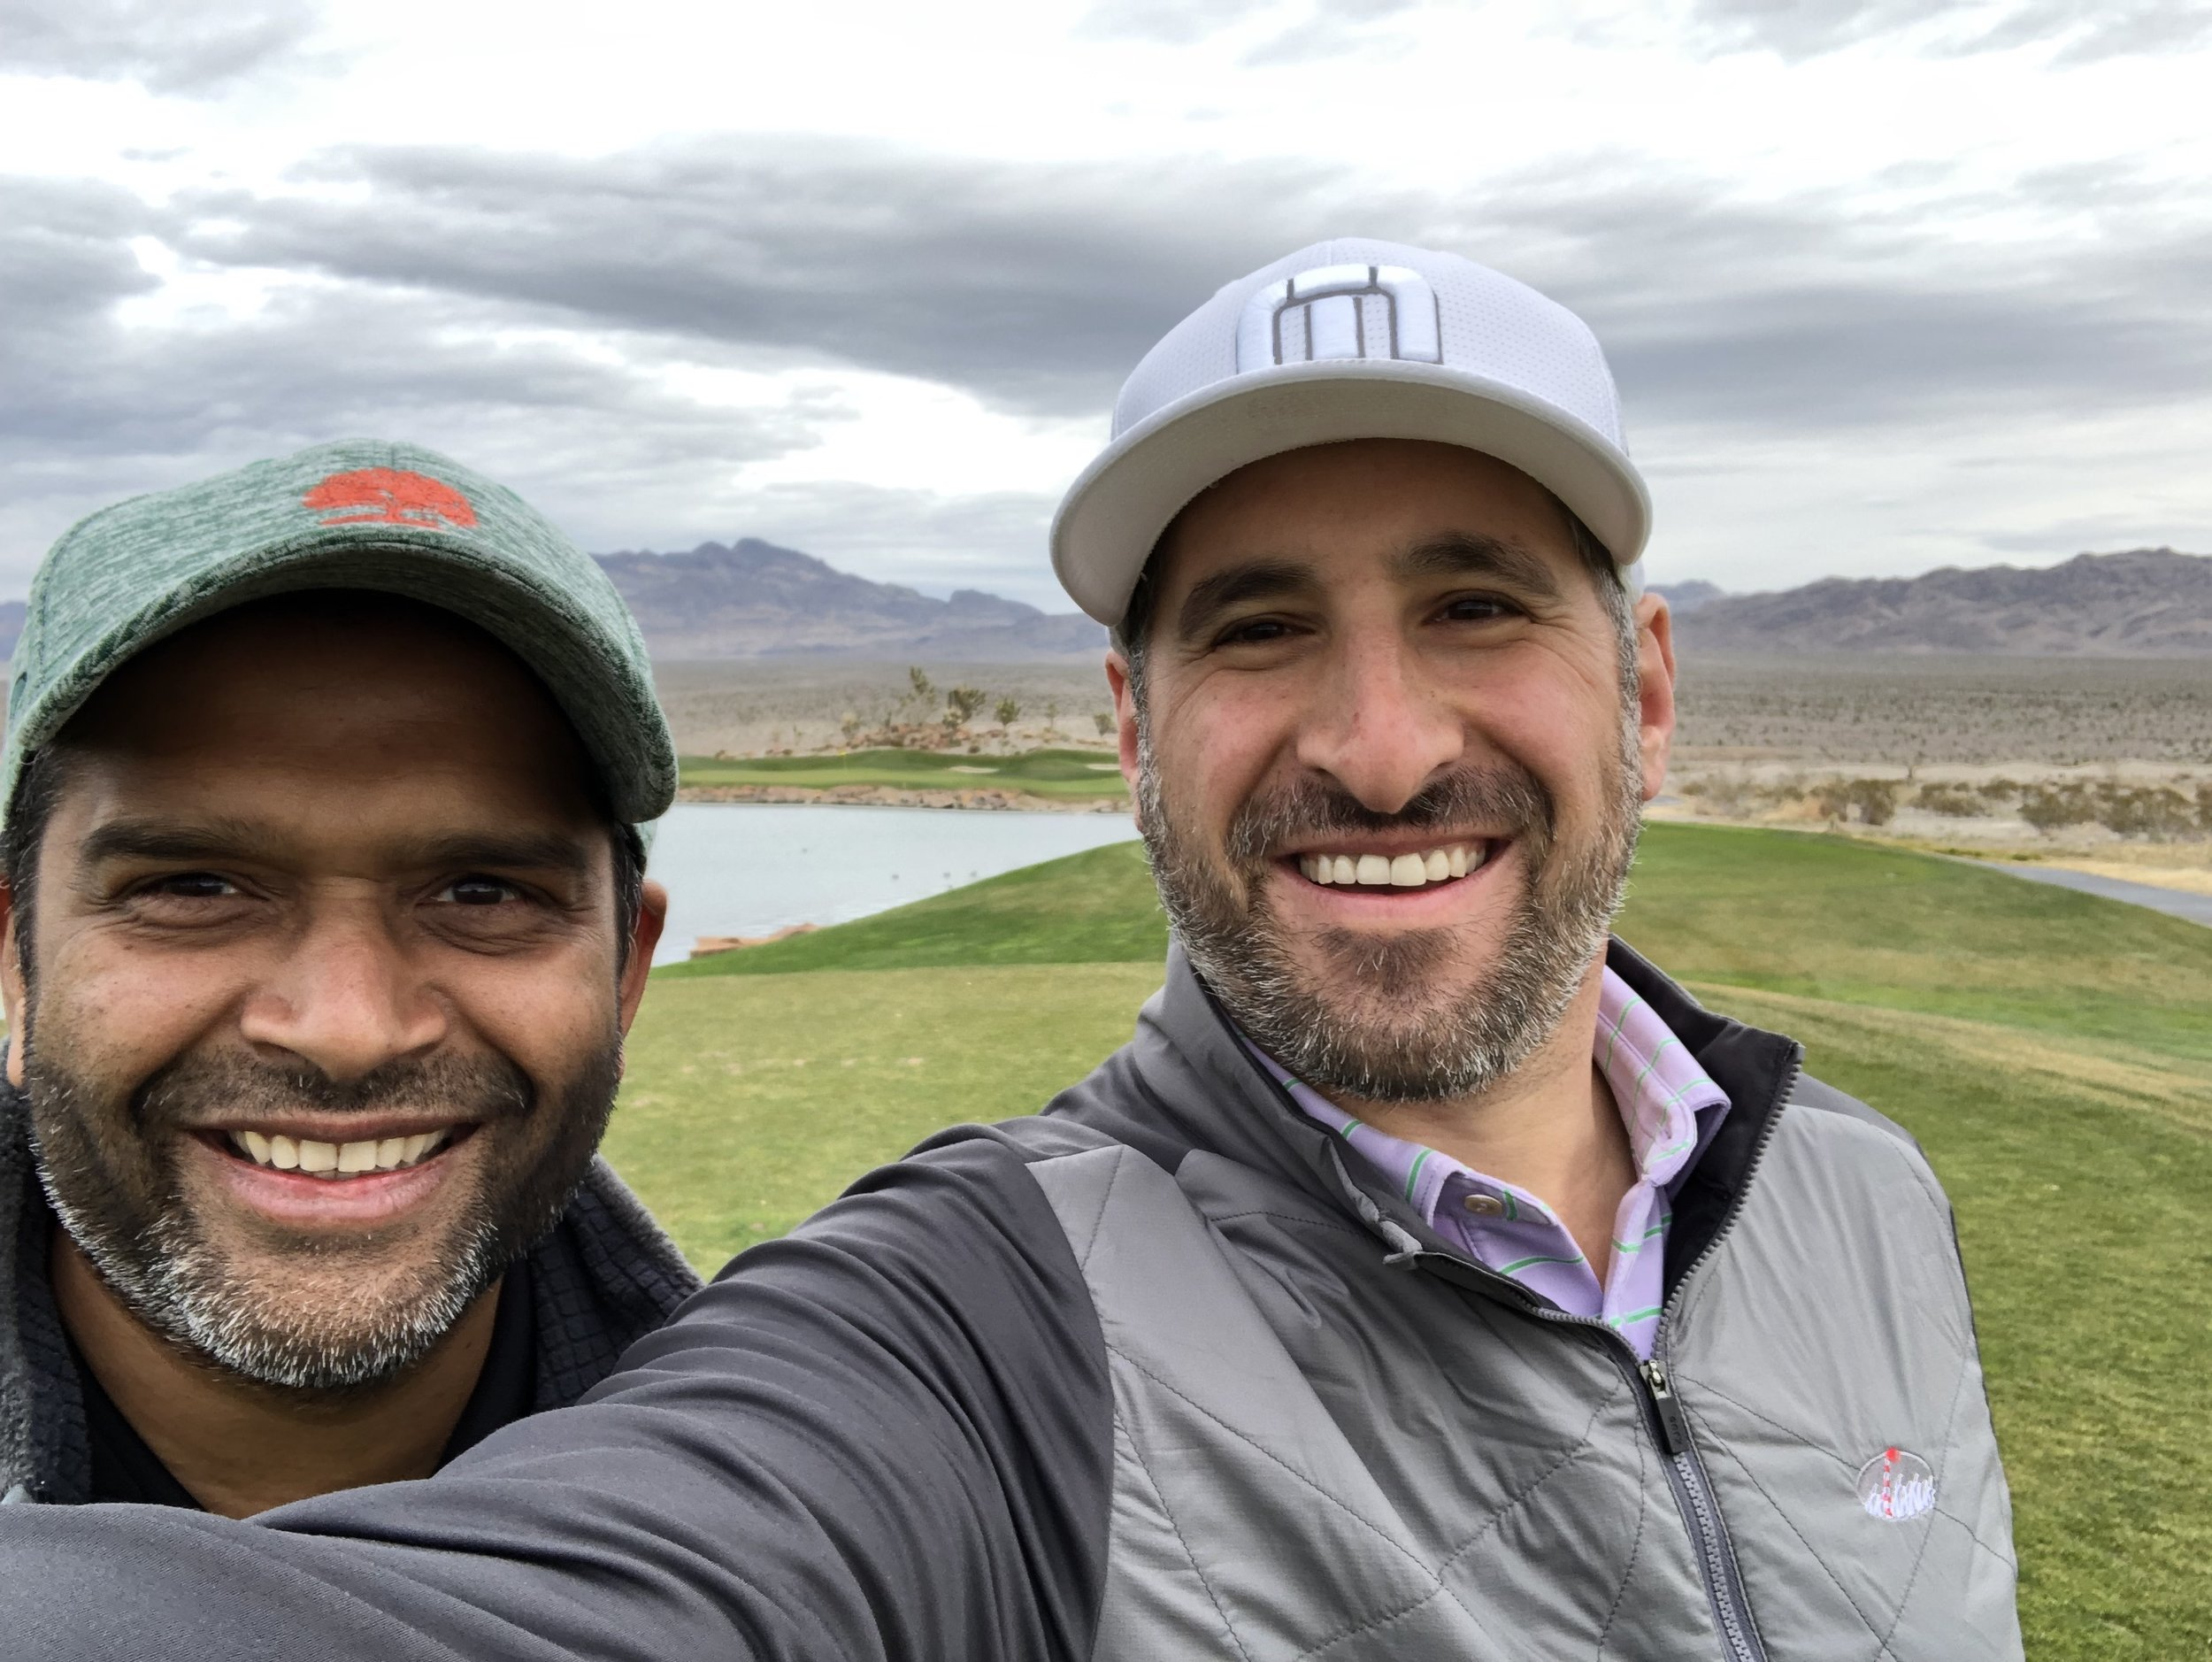 MSPCA-angell - Andrew Nigrelli (Weston, MA) & Paresh Patel (Weston, MA)The team from the Official Charity Partner of The Barstool Classic at Wollaston. Never too old…